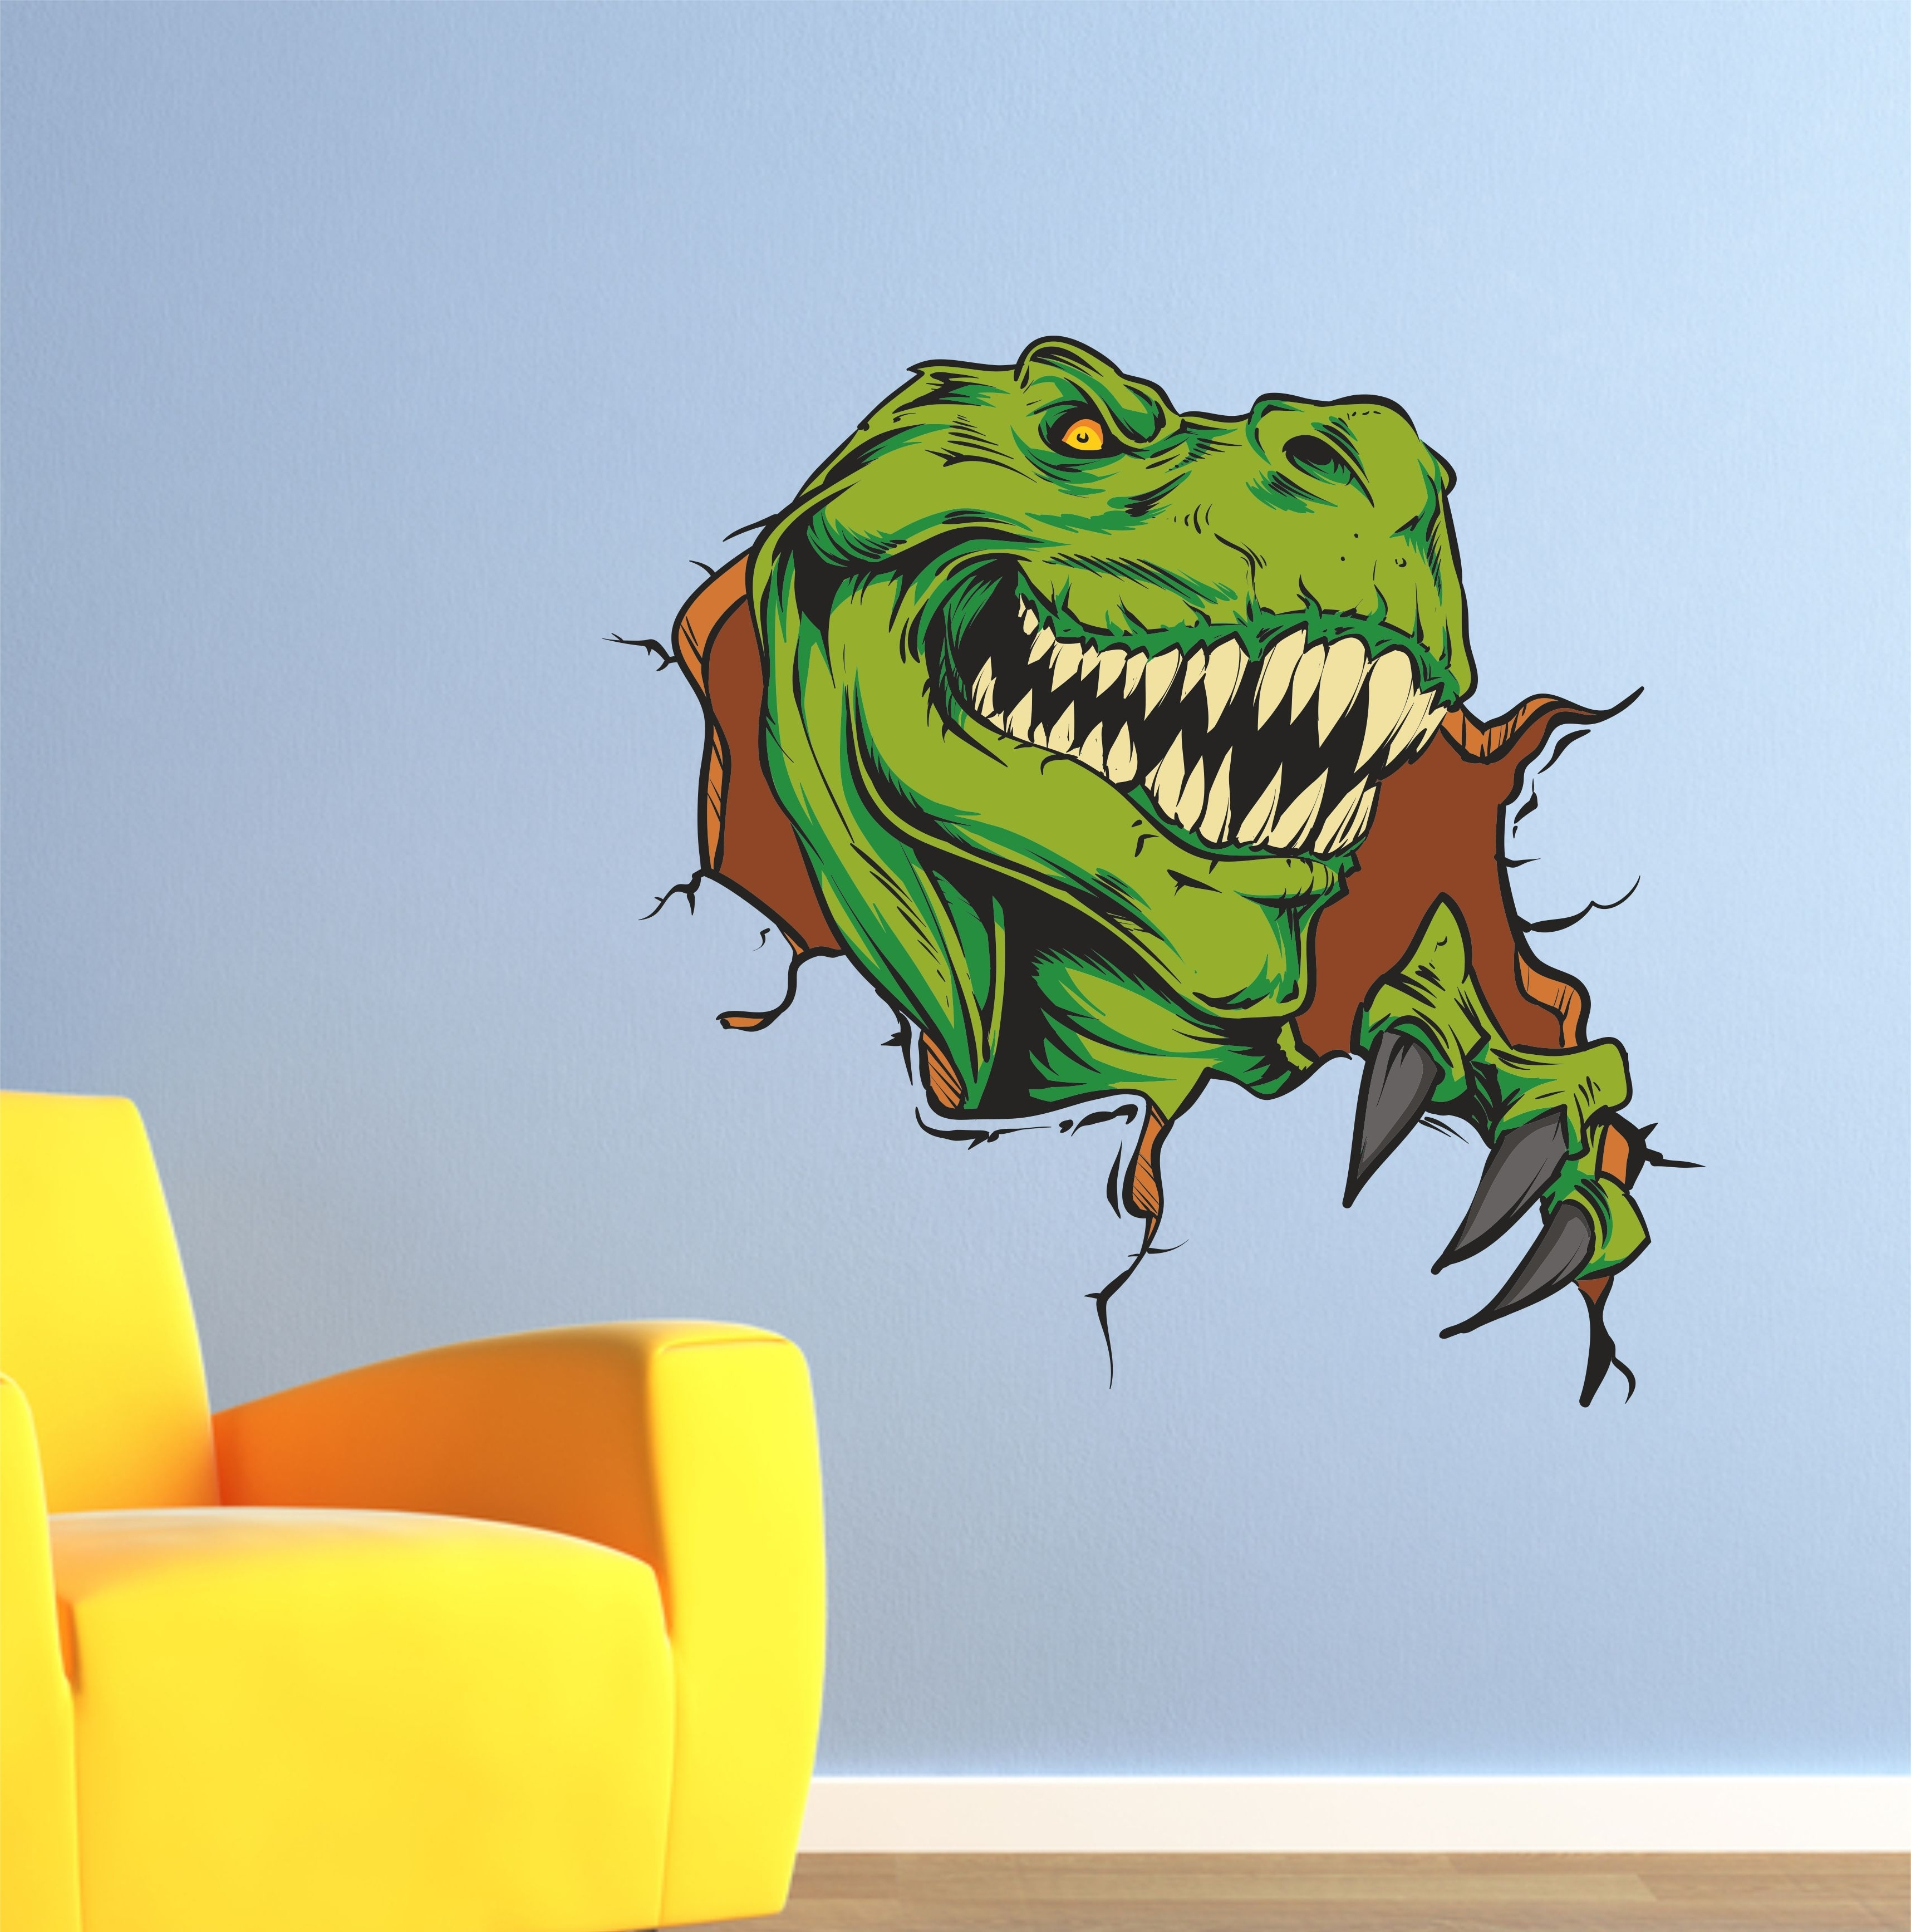 Dinosaur Wall Art In Most Popular The Grafix Studio (View 7 of 15)